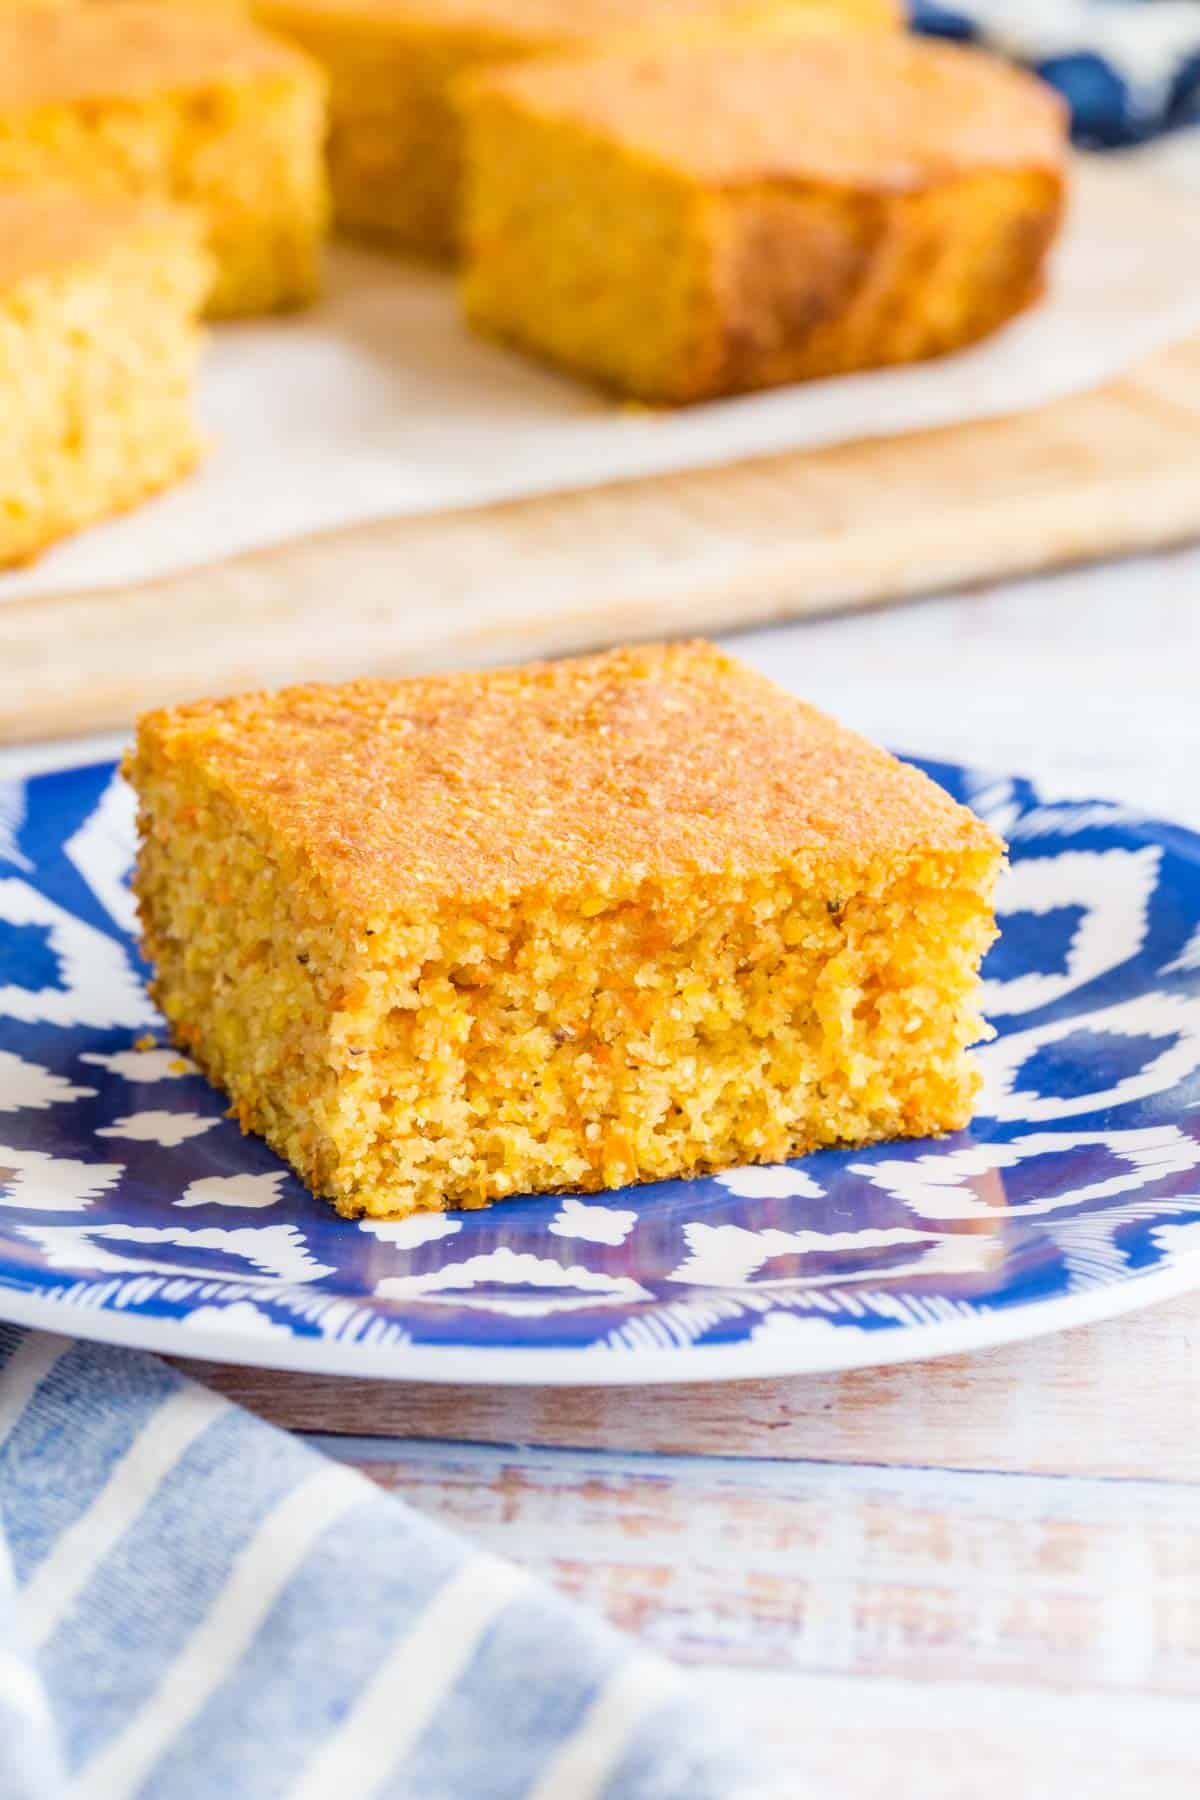 one square of cornbread on a blue and white plate